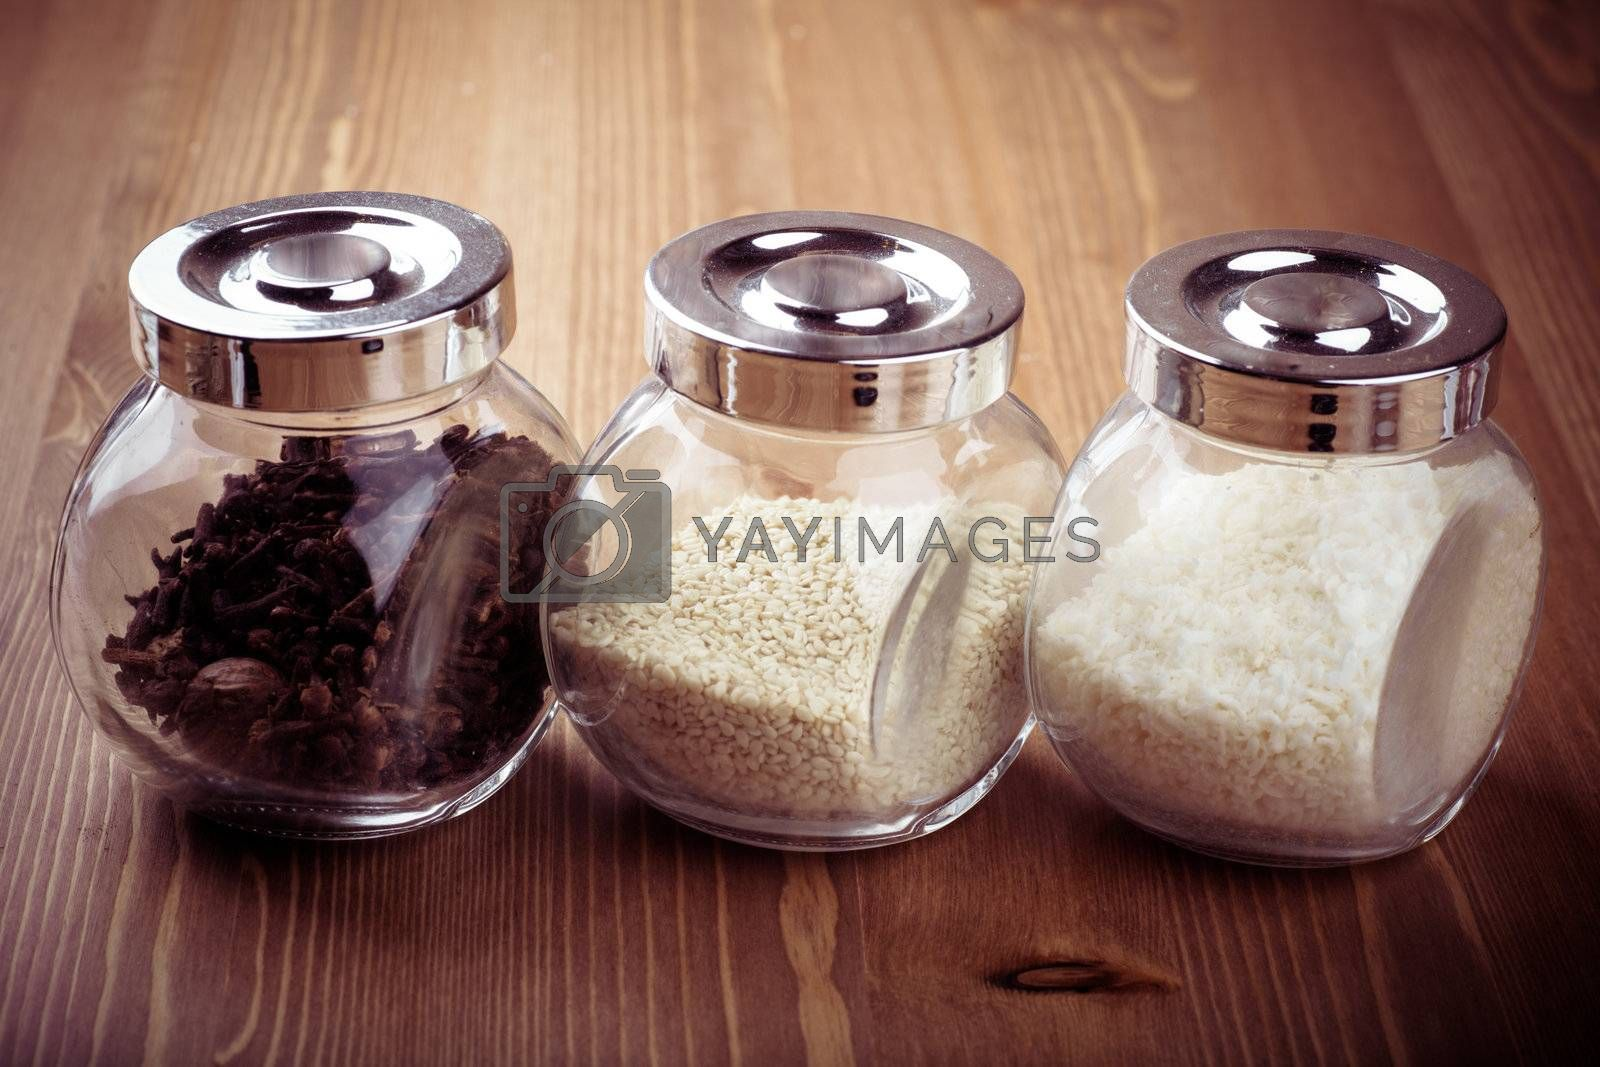 Closeup view of small glass jars with spices